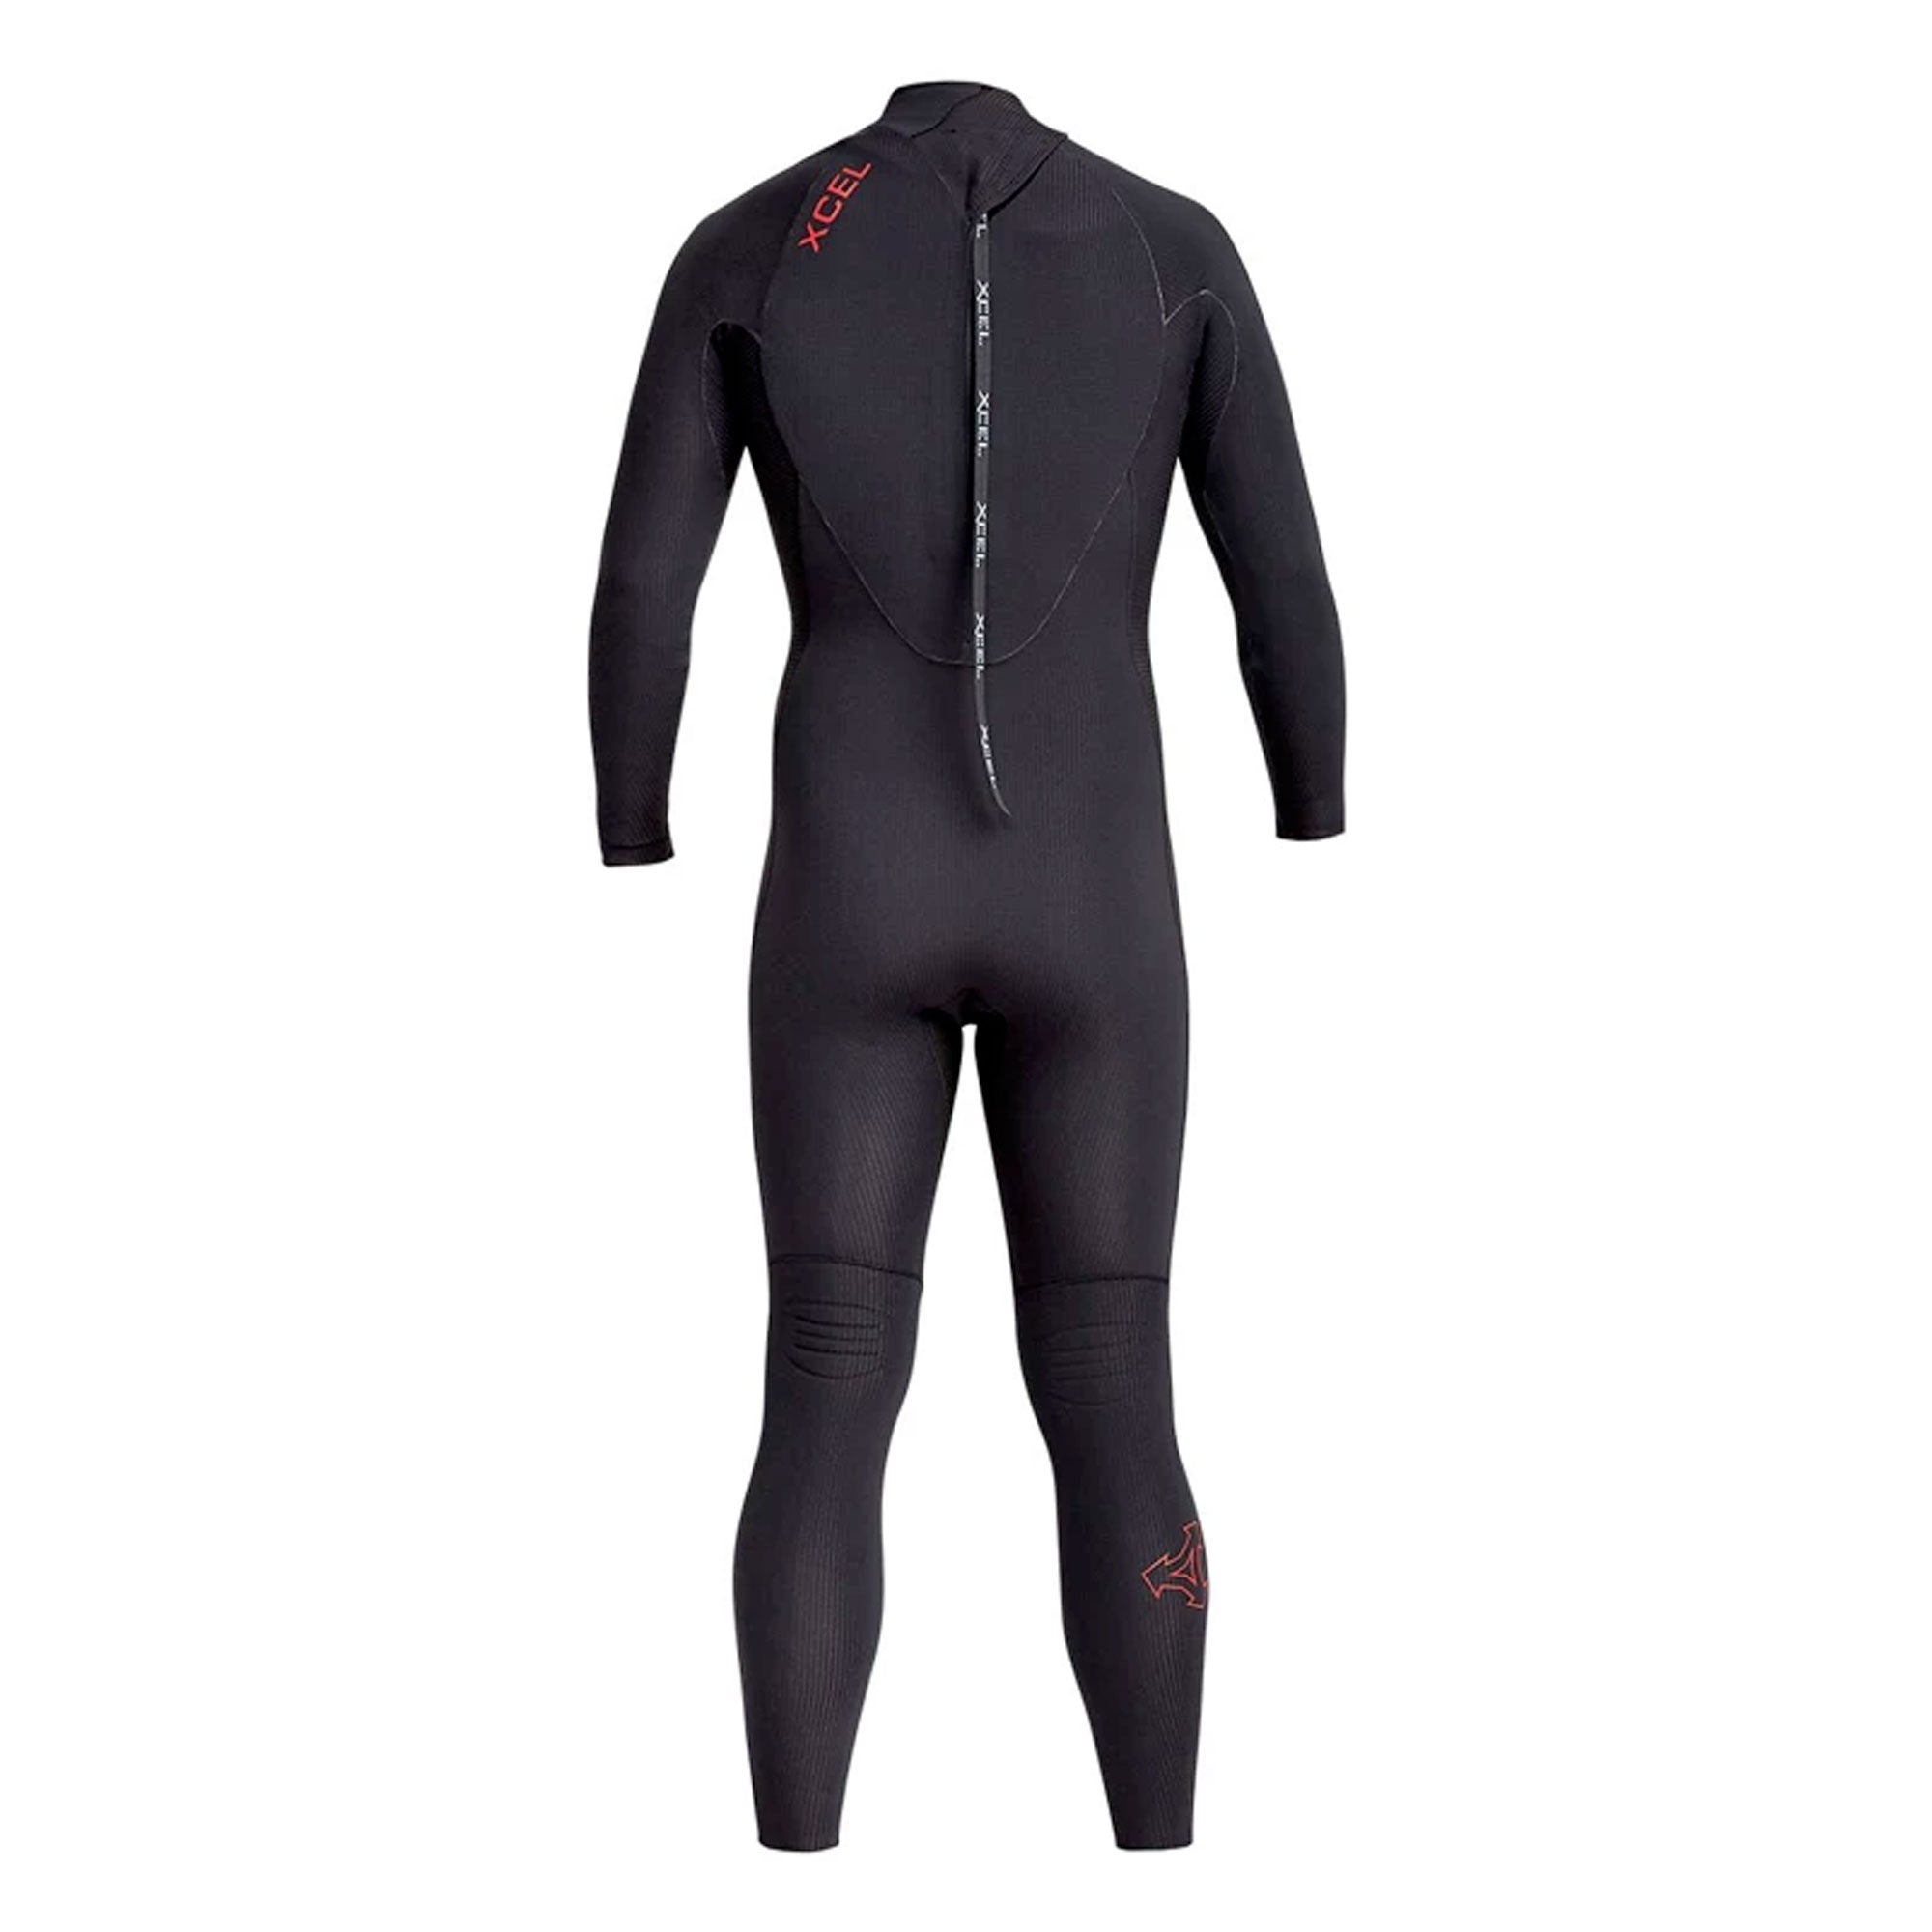 Xcel Men's 4/3 Infiniti LTD Back Zip Wetsuit